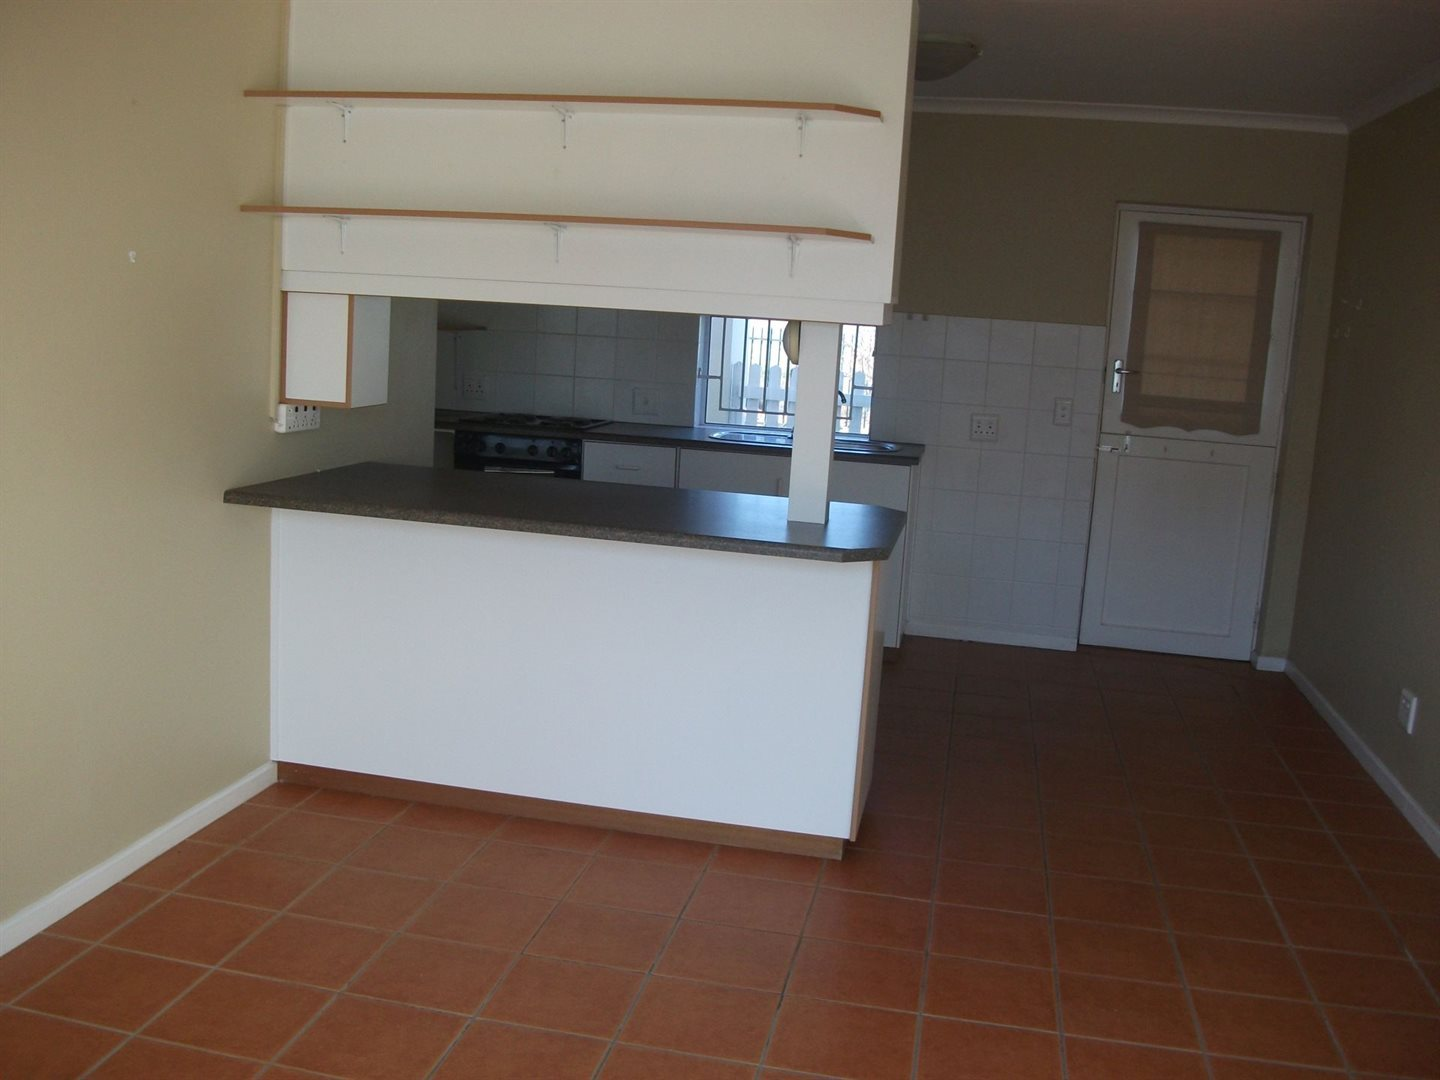 Langerug property for sale. Ref No: 13465598. Picture no 10